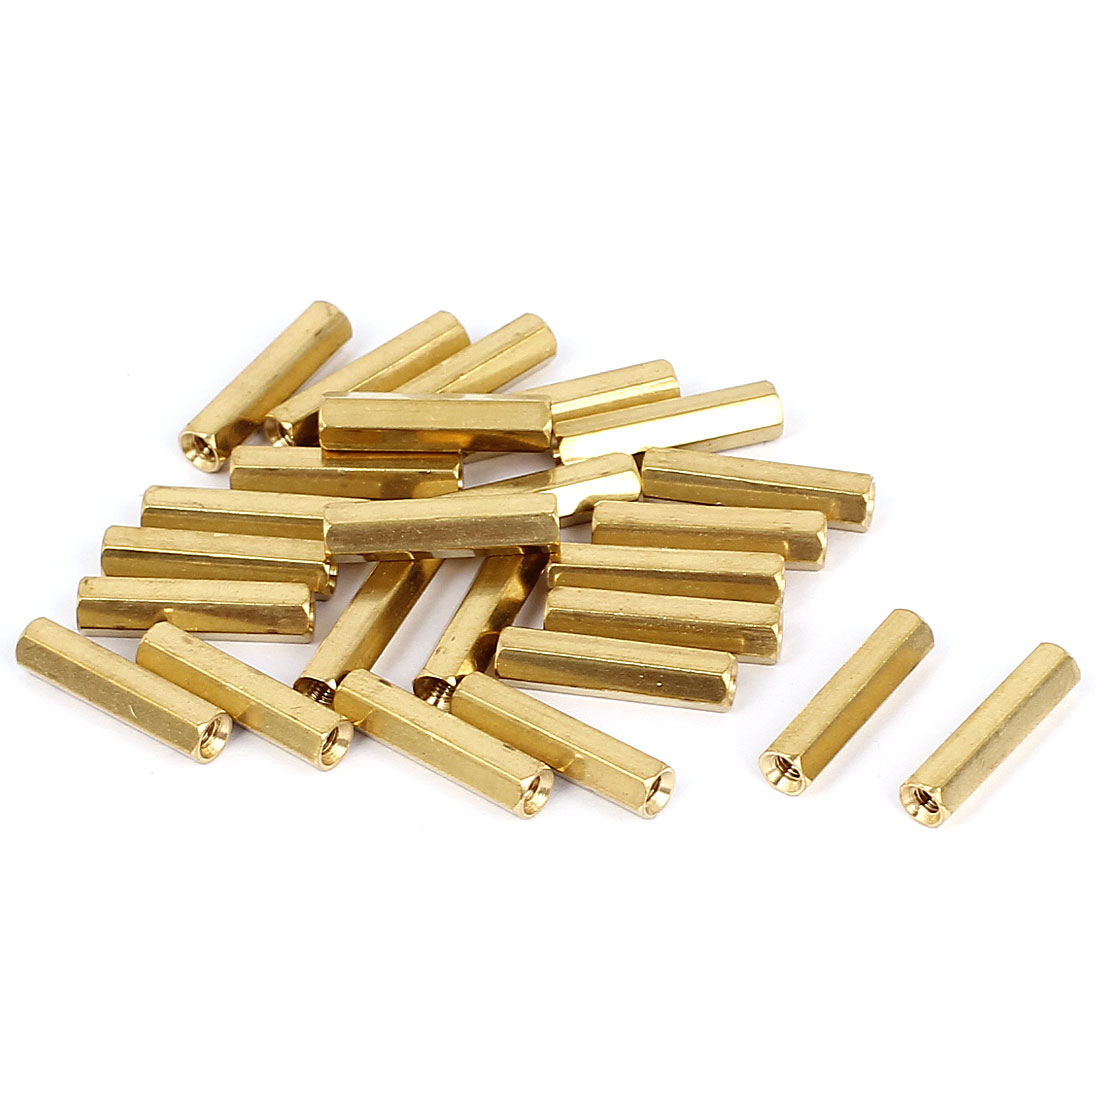 M3 x 20mm Female Thread Brass Hex Standoff Pillar Rod Spacer Coupler Nut 50pcs